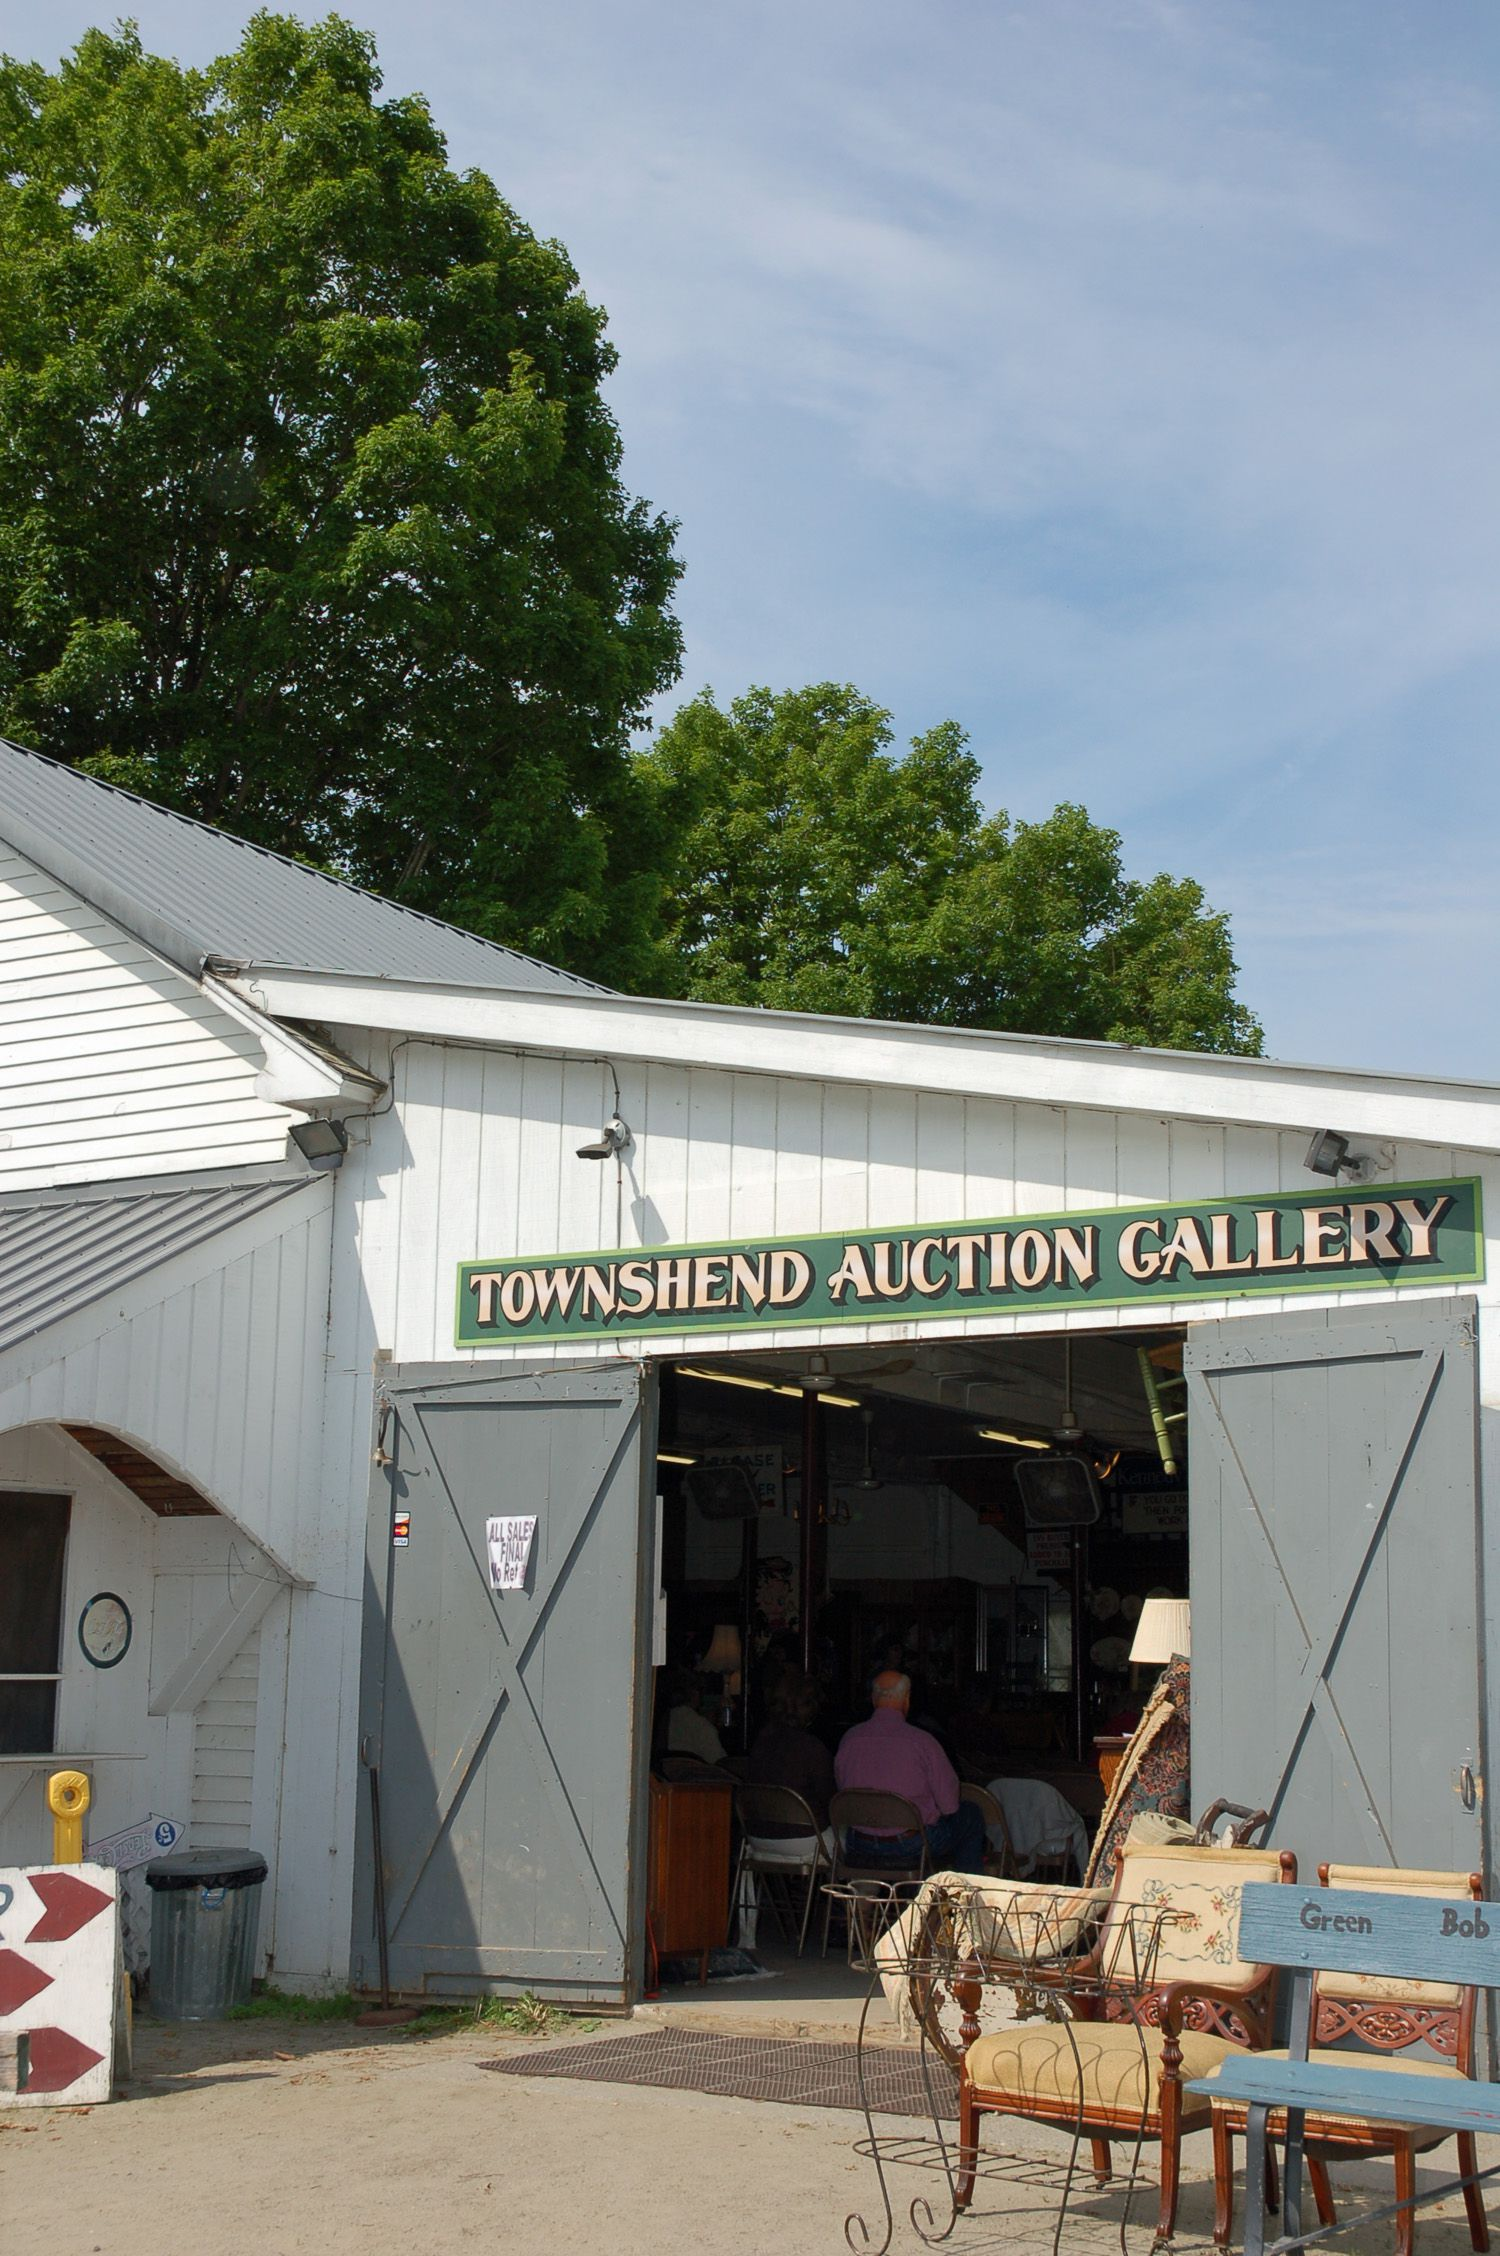 vermont auctions at townshend auction gallery